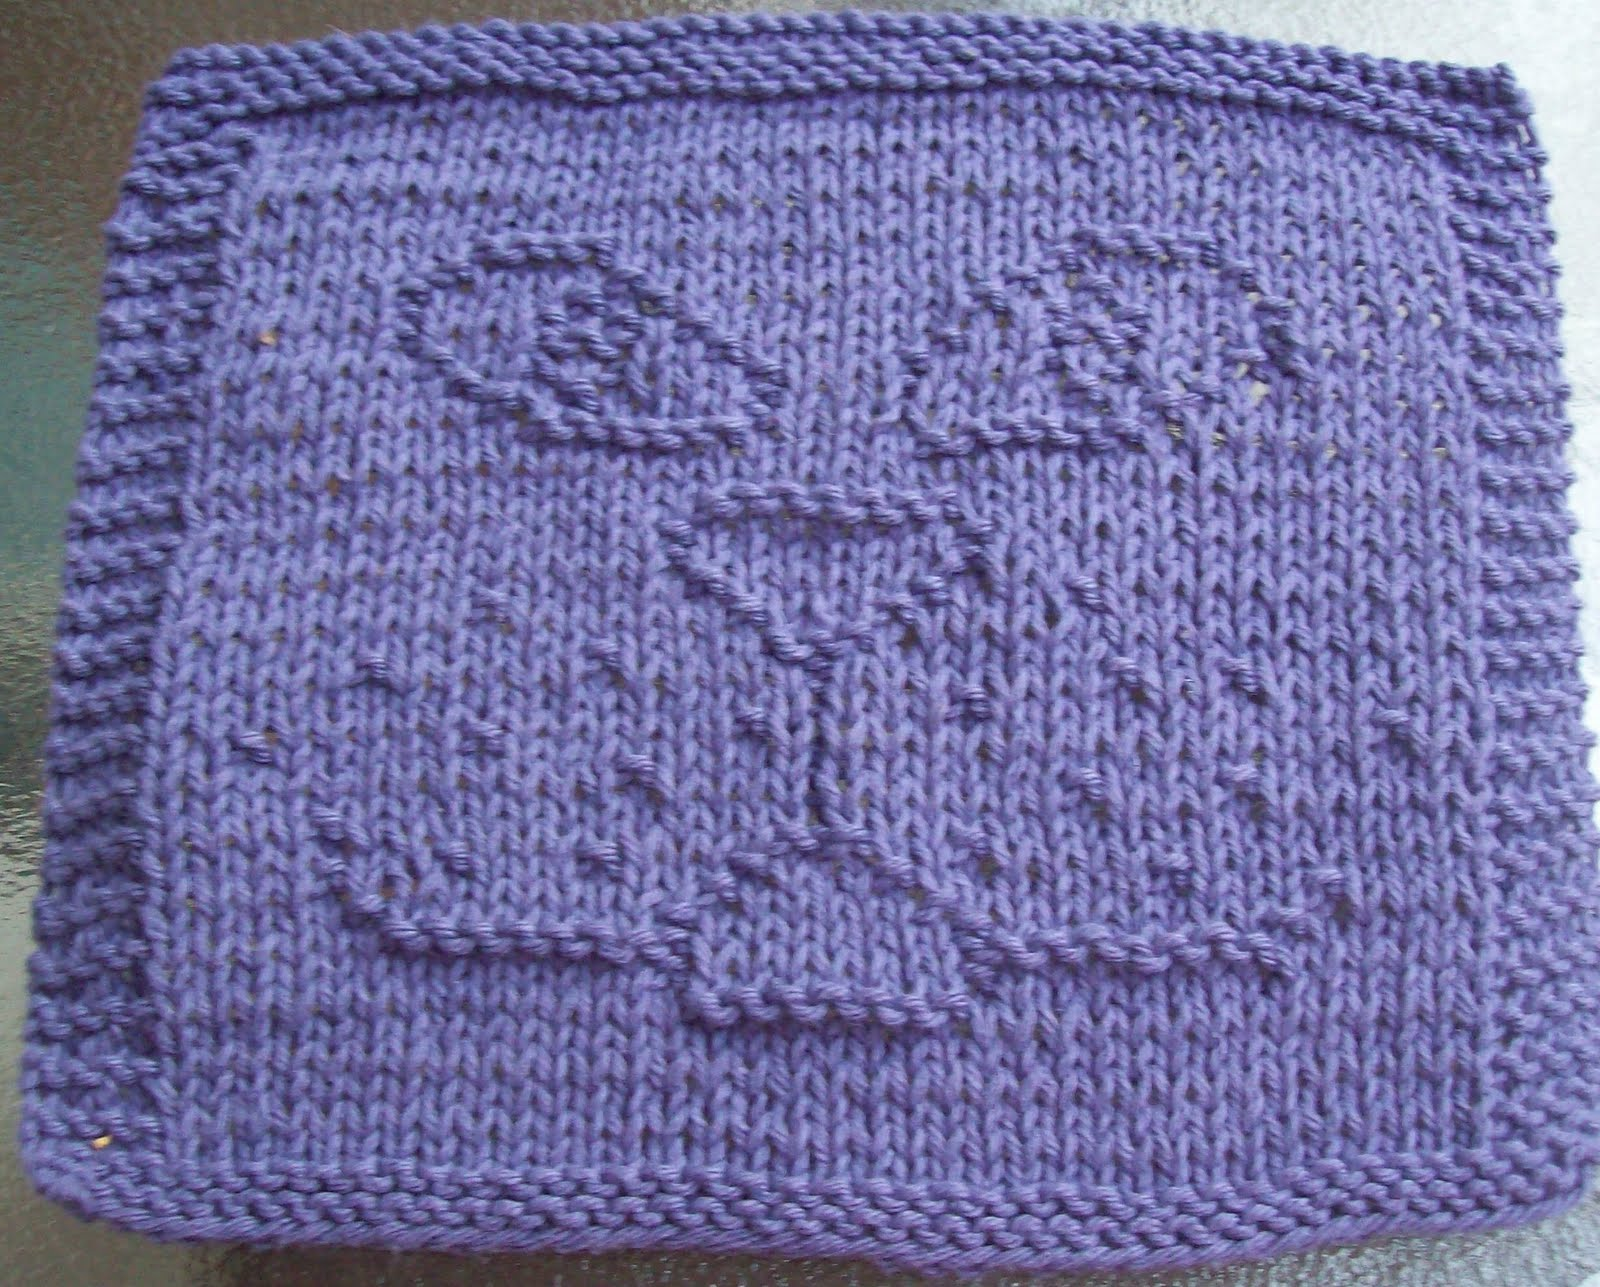 Dishcloth Knit Patterns Free : Knitting Dishcloth Patterns Fish